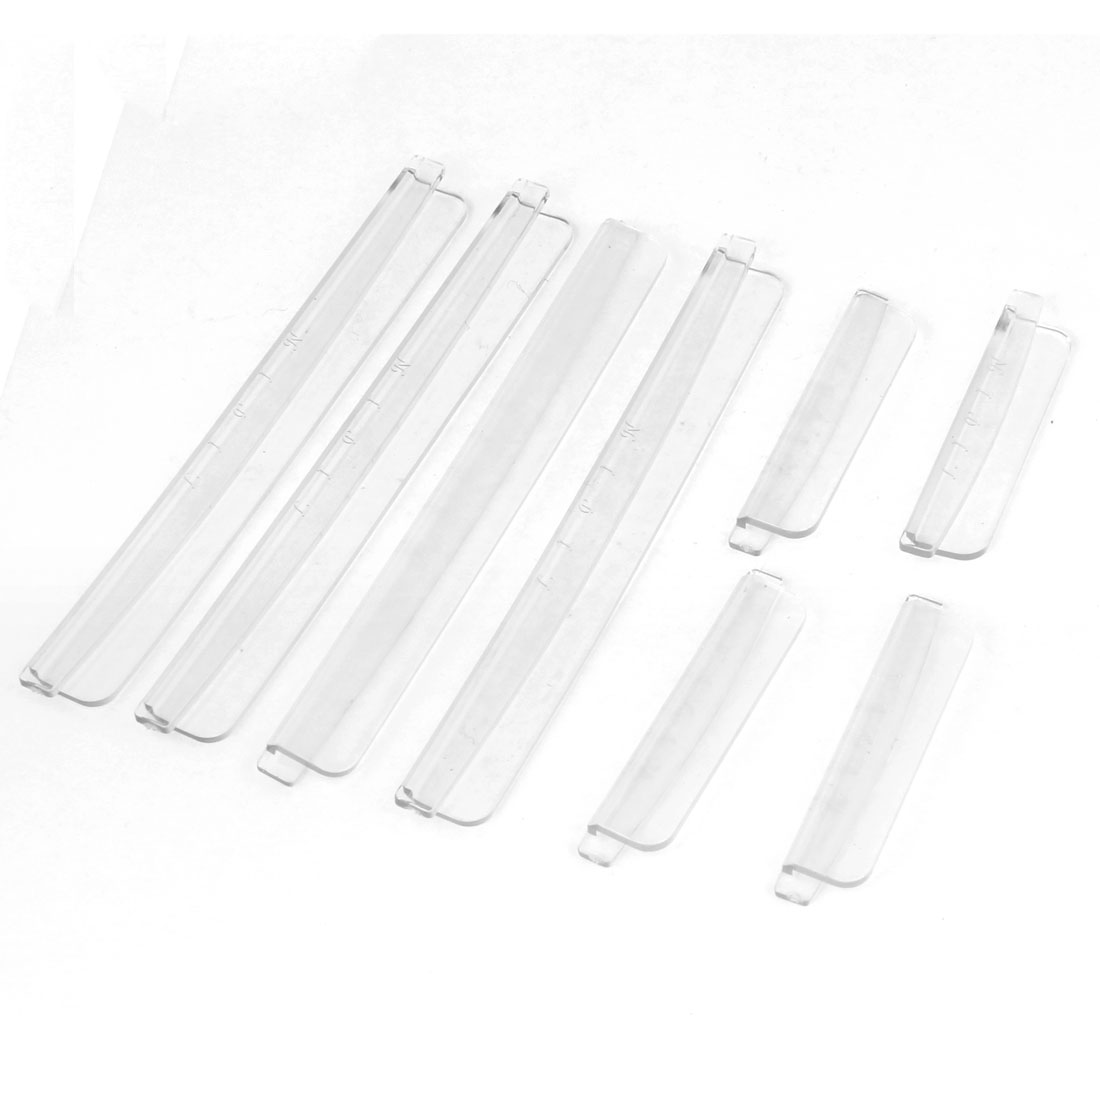 8 x Soft Plastic Door Mirror Edge Guard Protector Sticker Clear for Auto